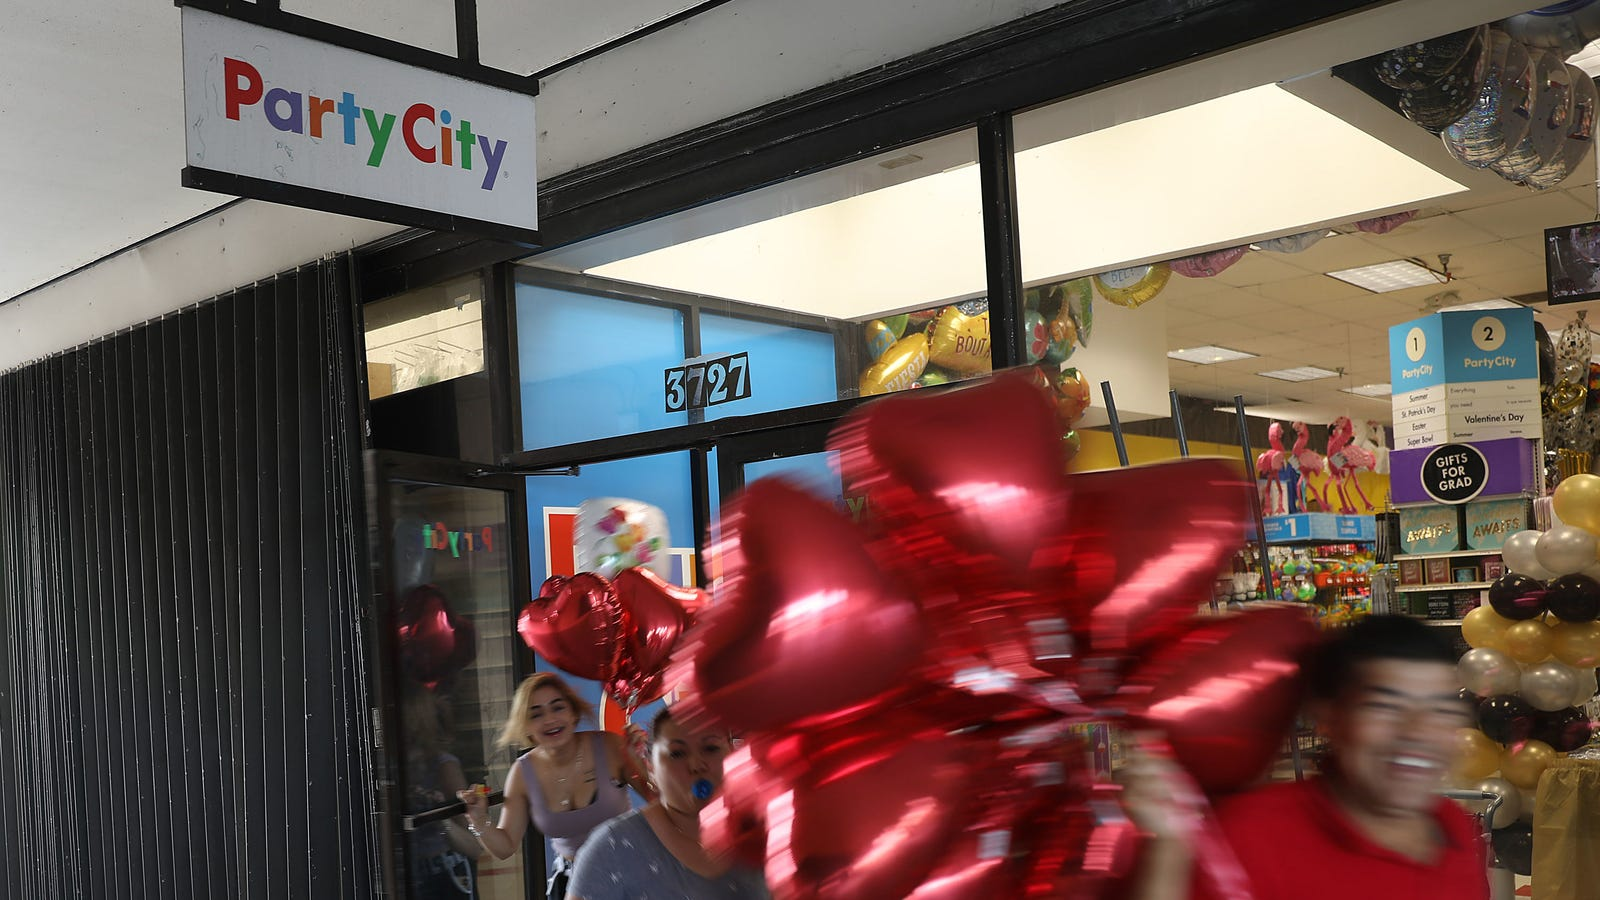 The Global Helium Shortage Has Gotten So Bad, Party City Is Closing 45 Stores - Gizmodo